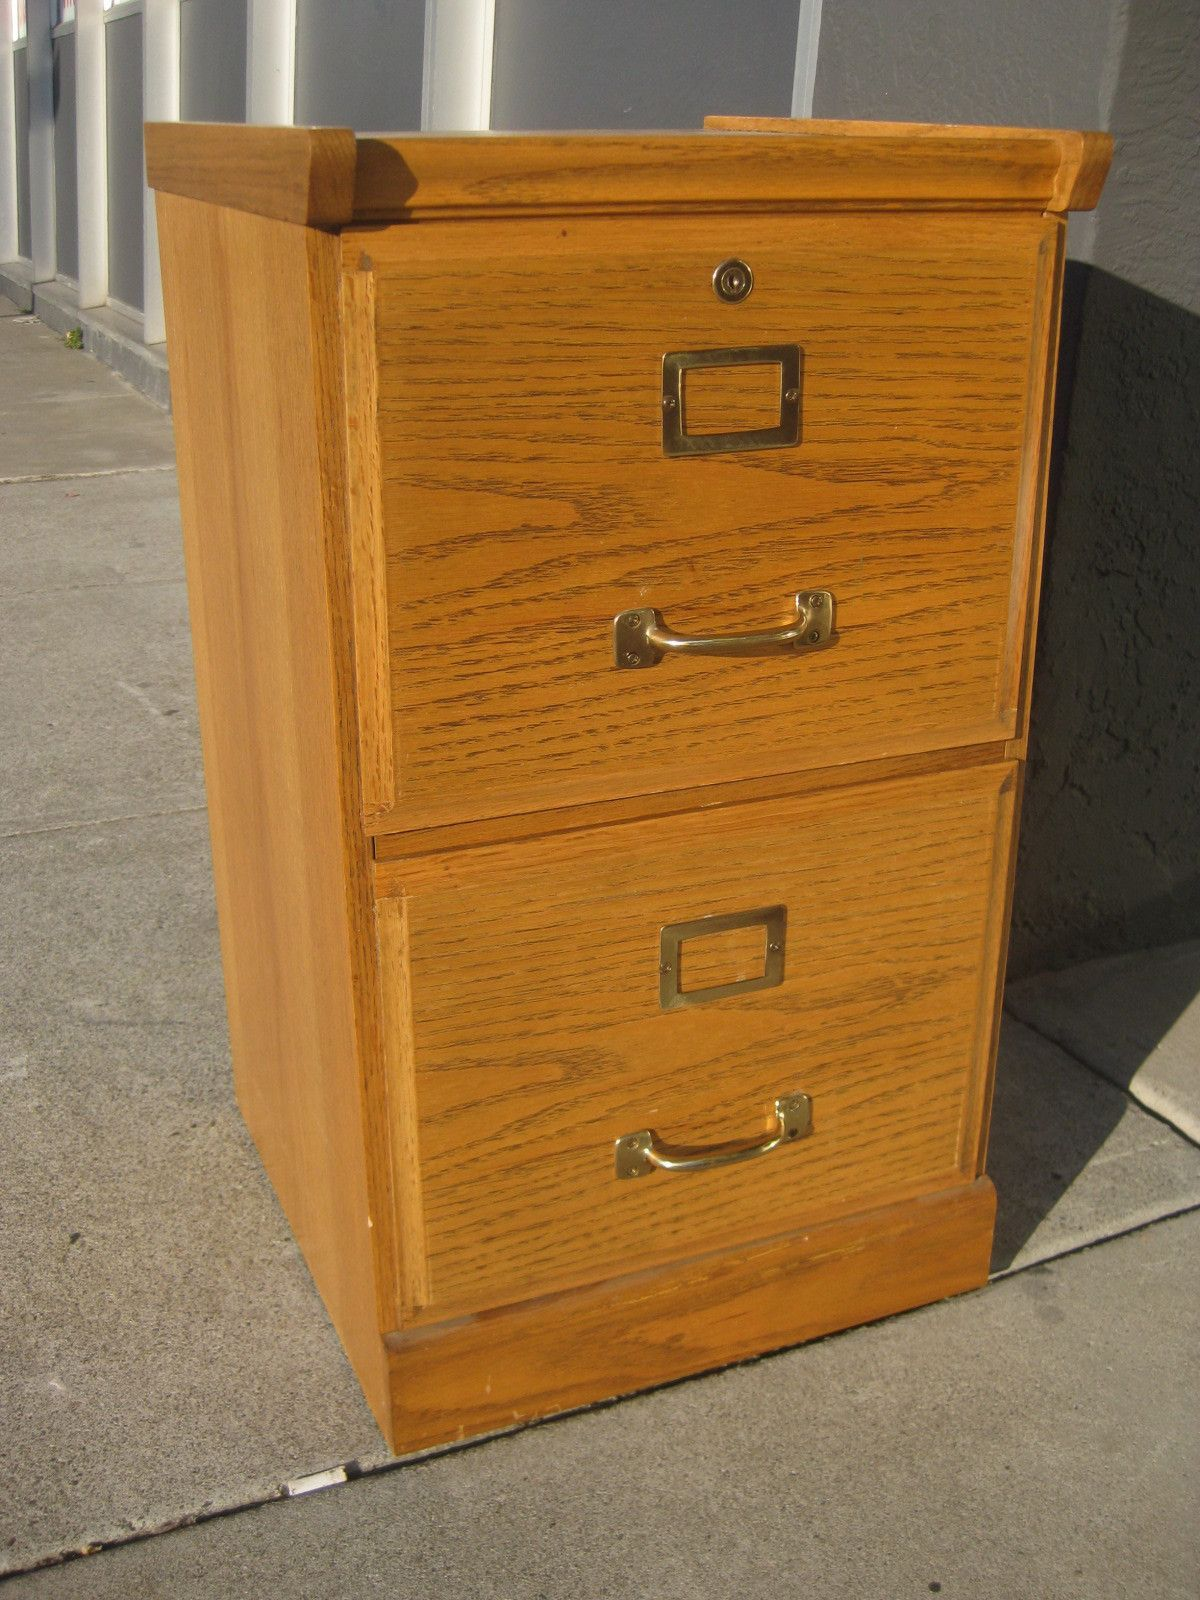 Wood Lateral Filing Cabinet 2 Drawer 2021 Filing Cabinet Drawer Filing Cabinet Wooden File Cabinet Two drawer wooden file cabinet